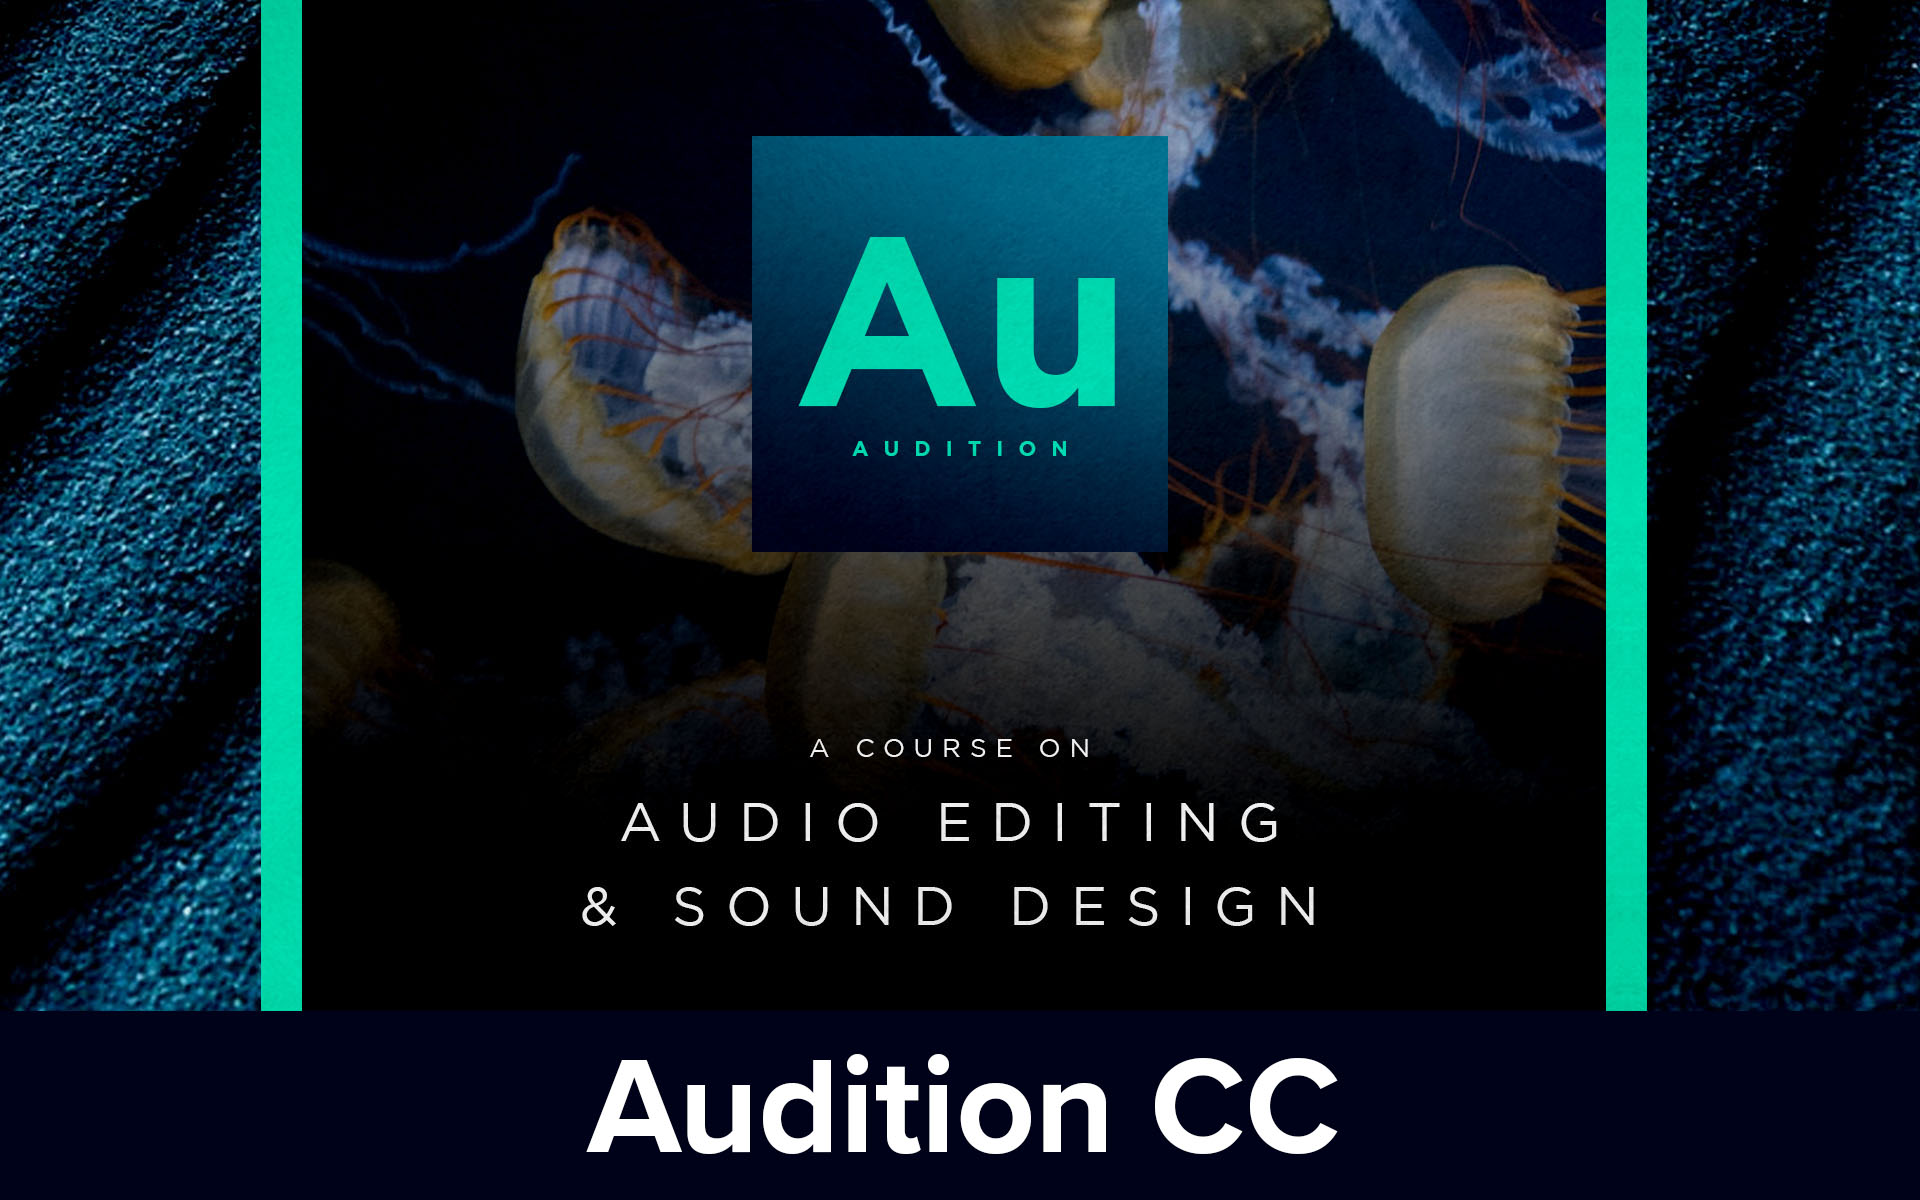 Adobe Audition course image